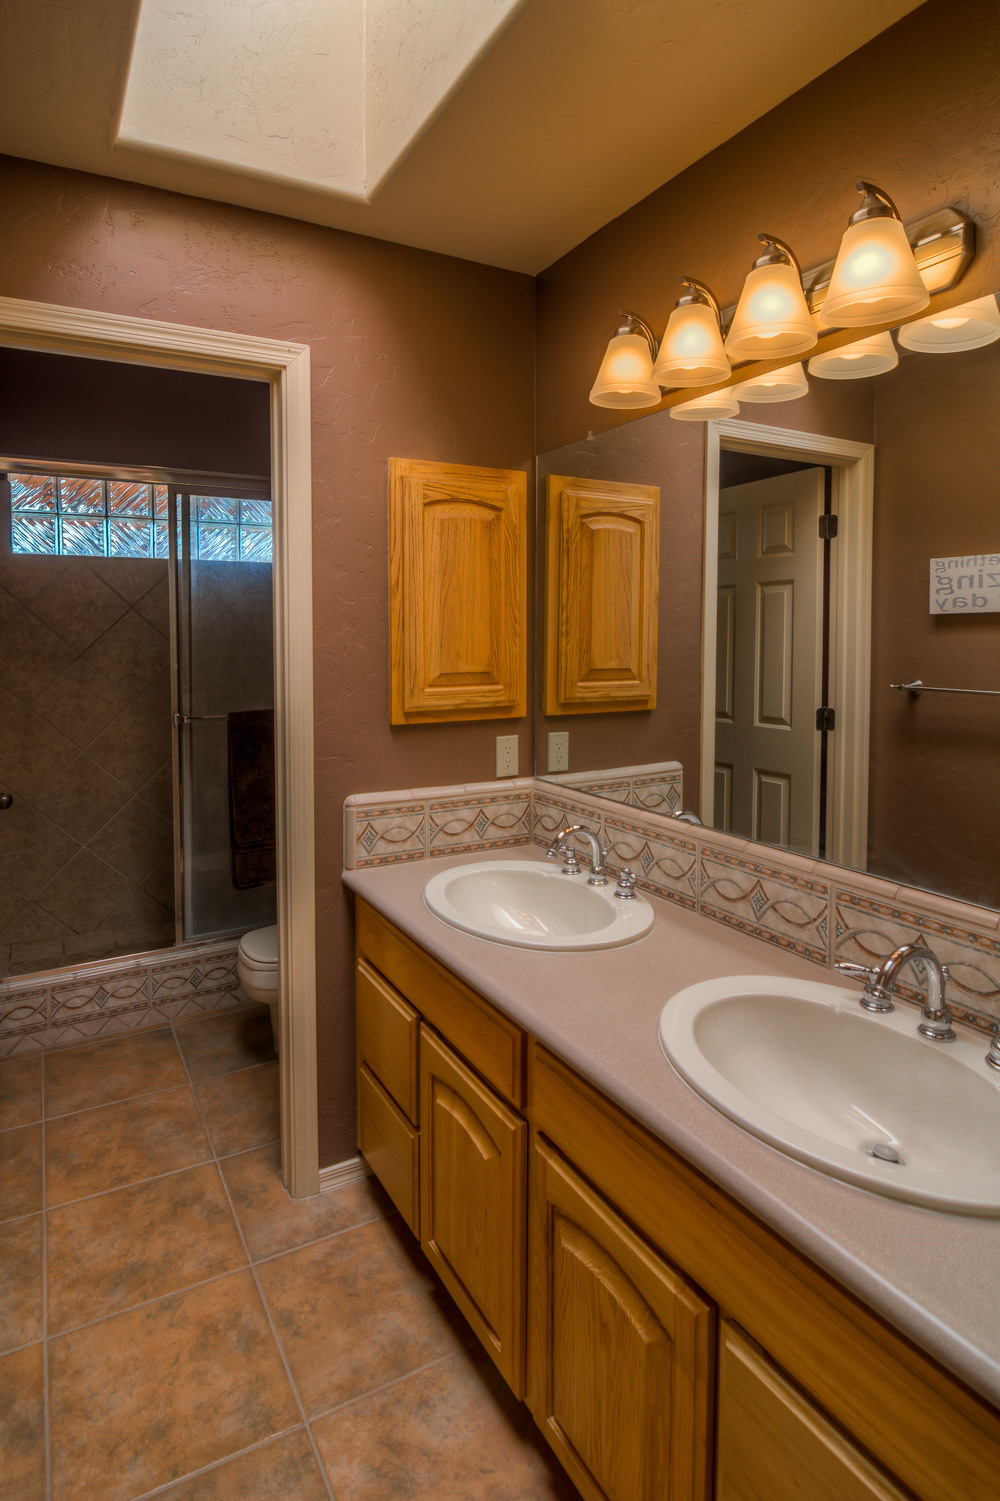 25 Bathroom 1 photo a.jpg